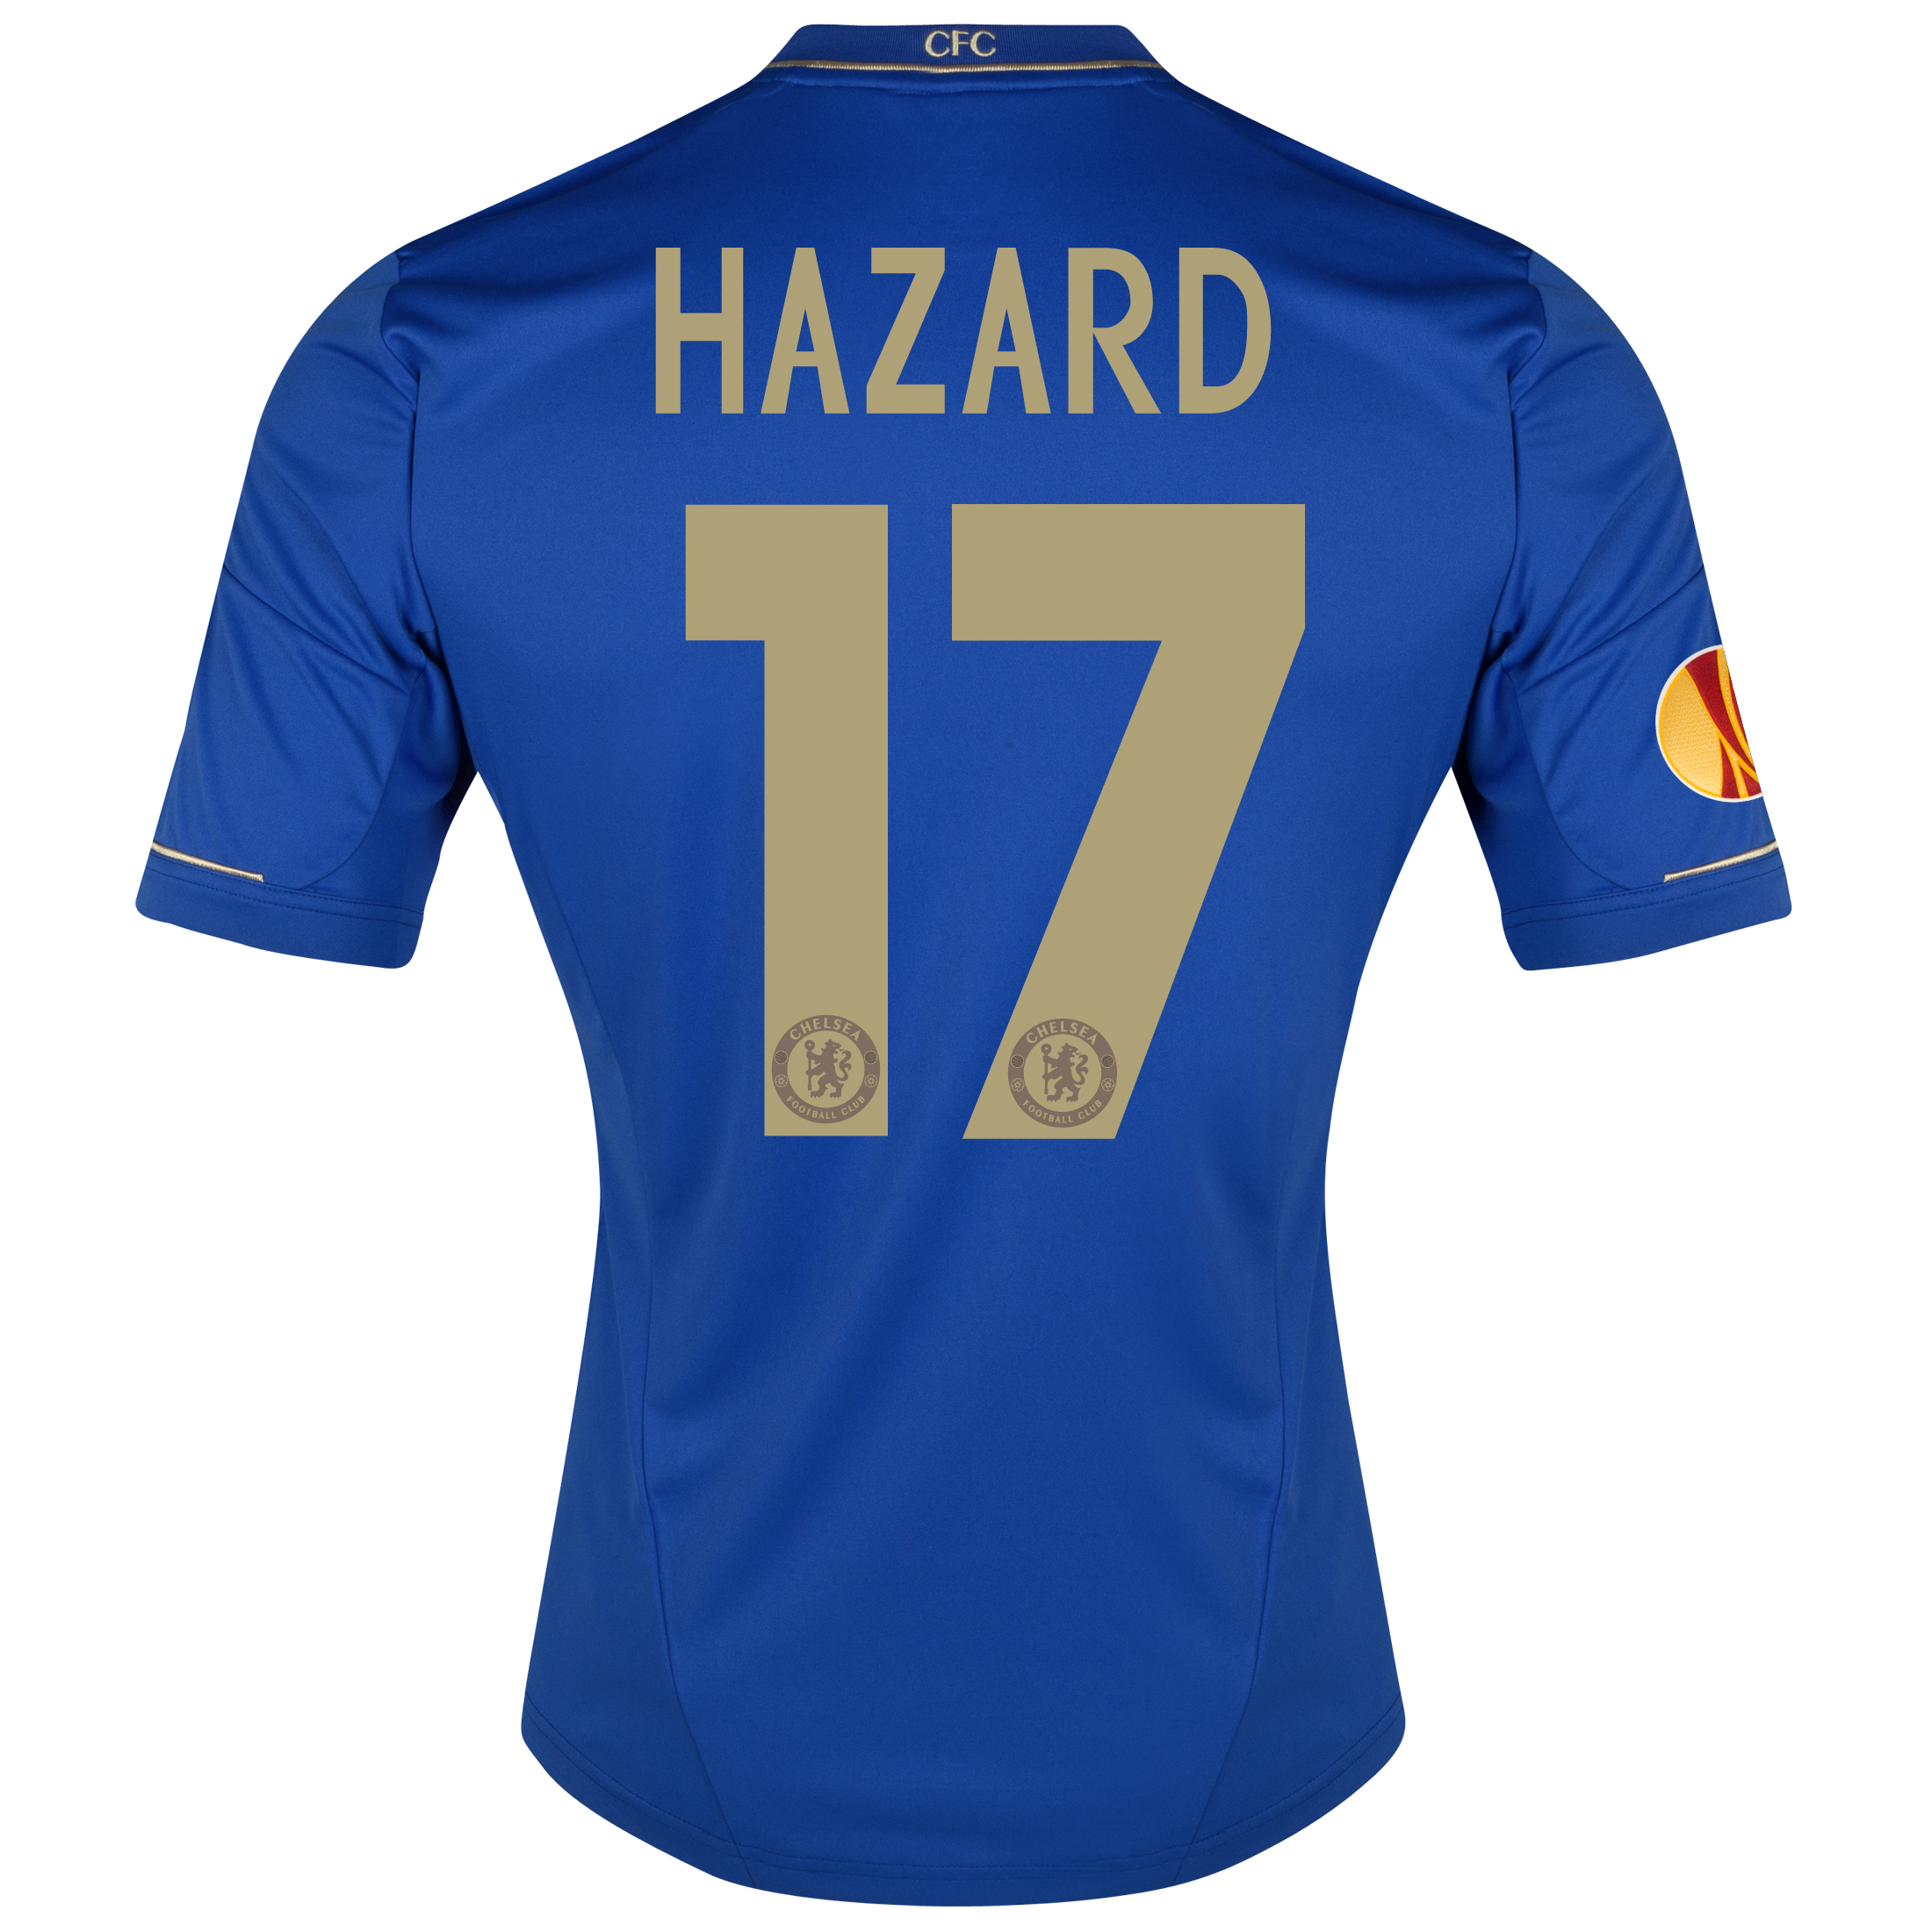 Chelsea UEFA Europa League Home Shirt 2012/13 with Hazard 17 printing Including Europa League Badge